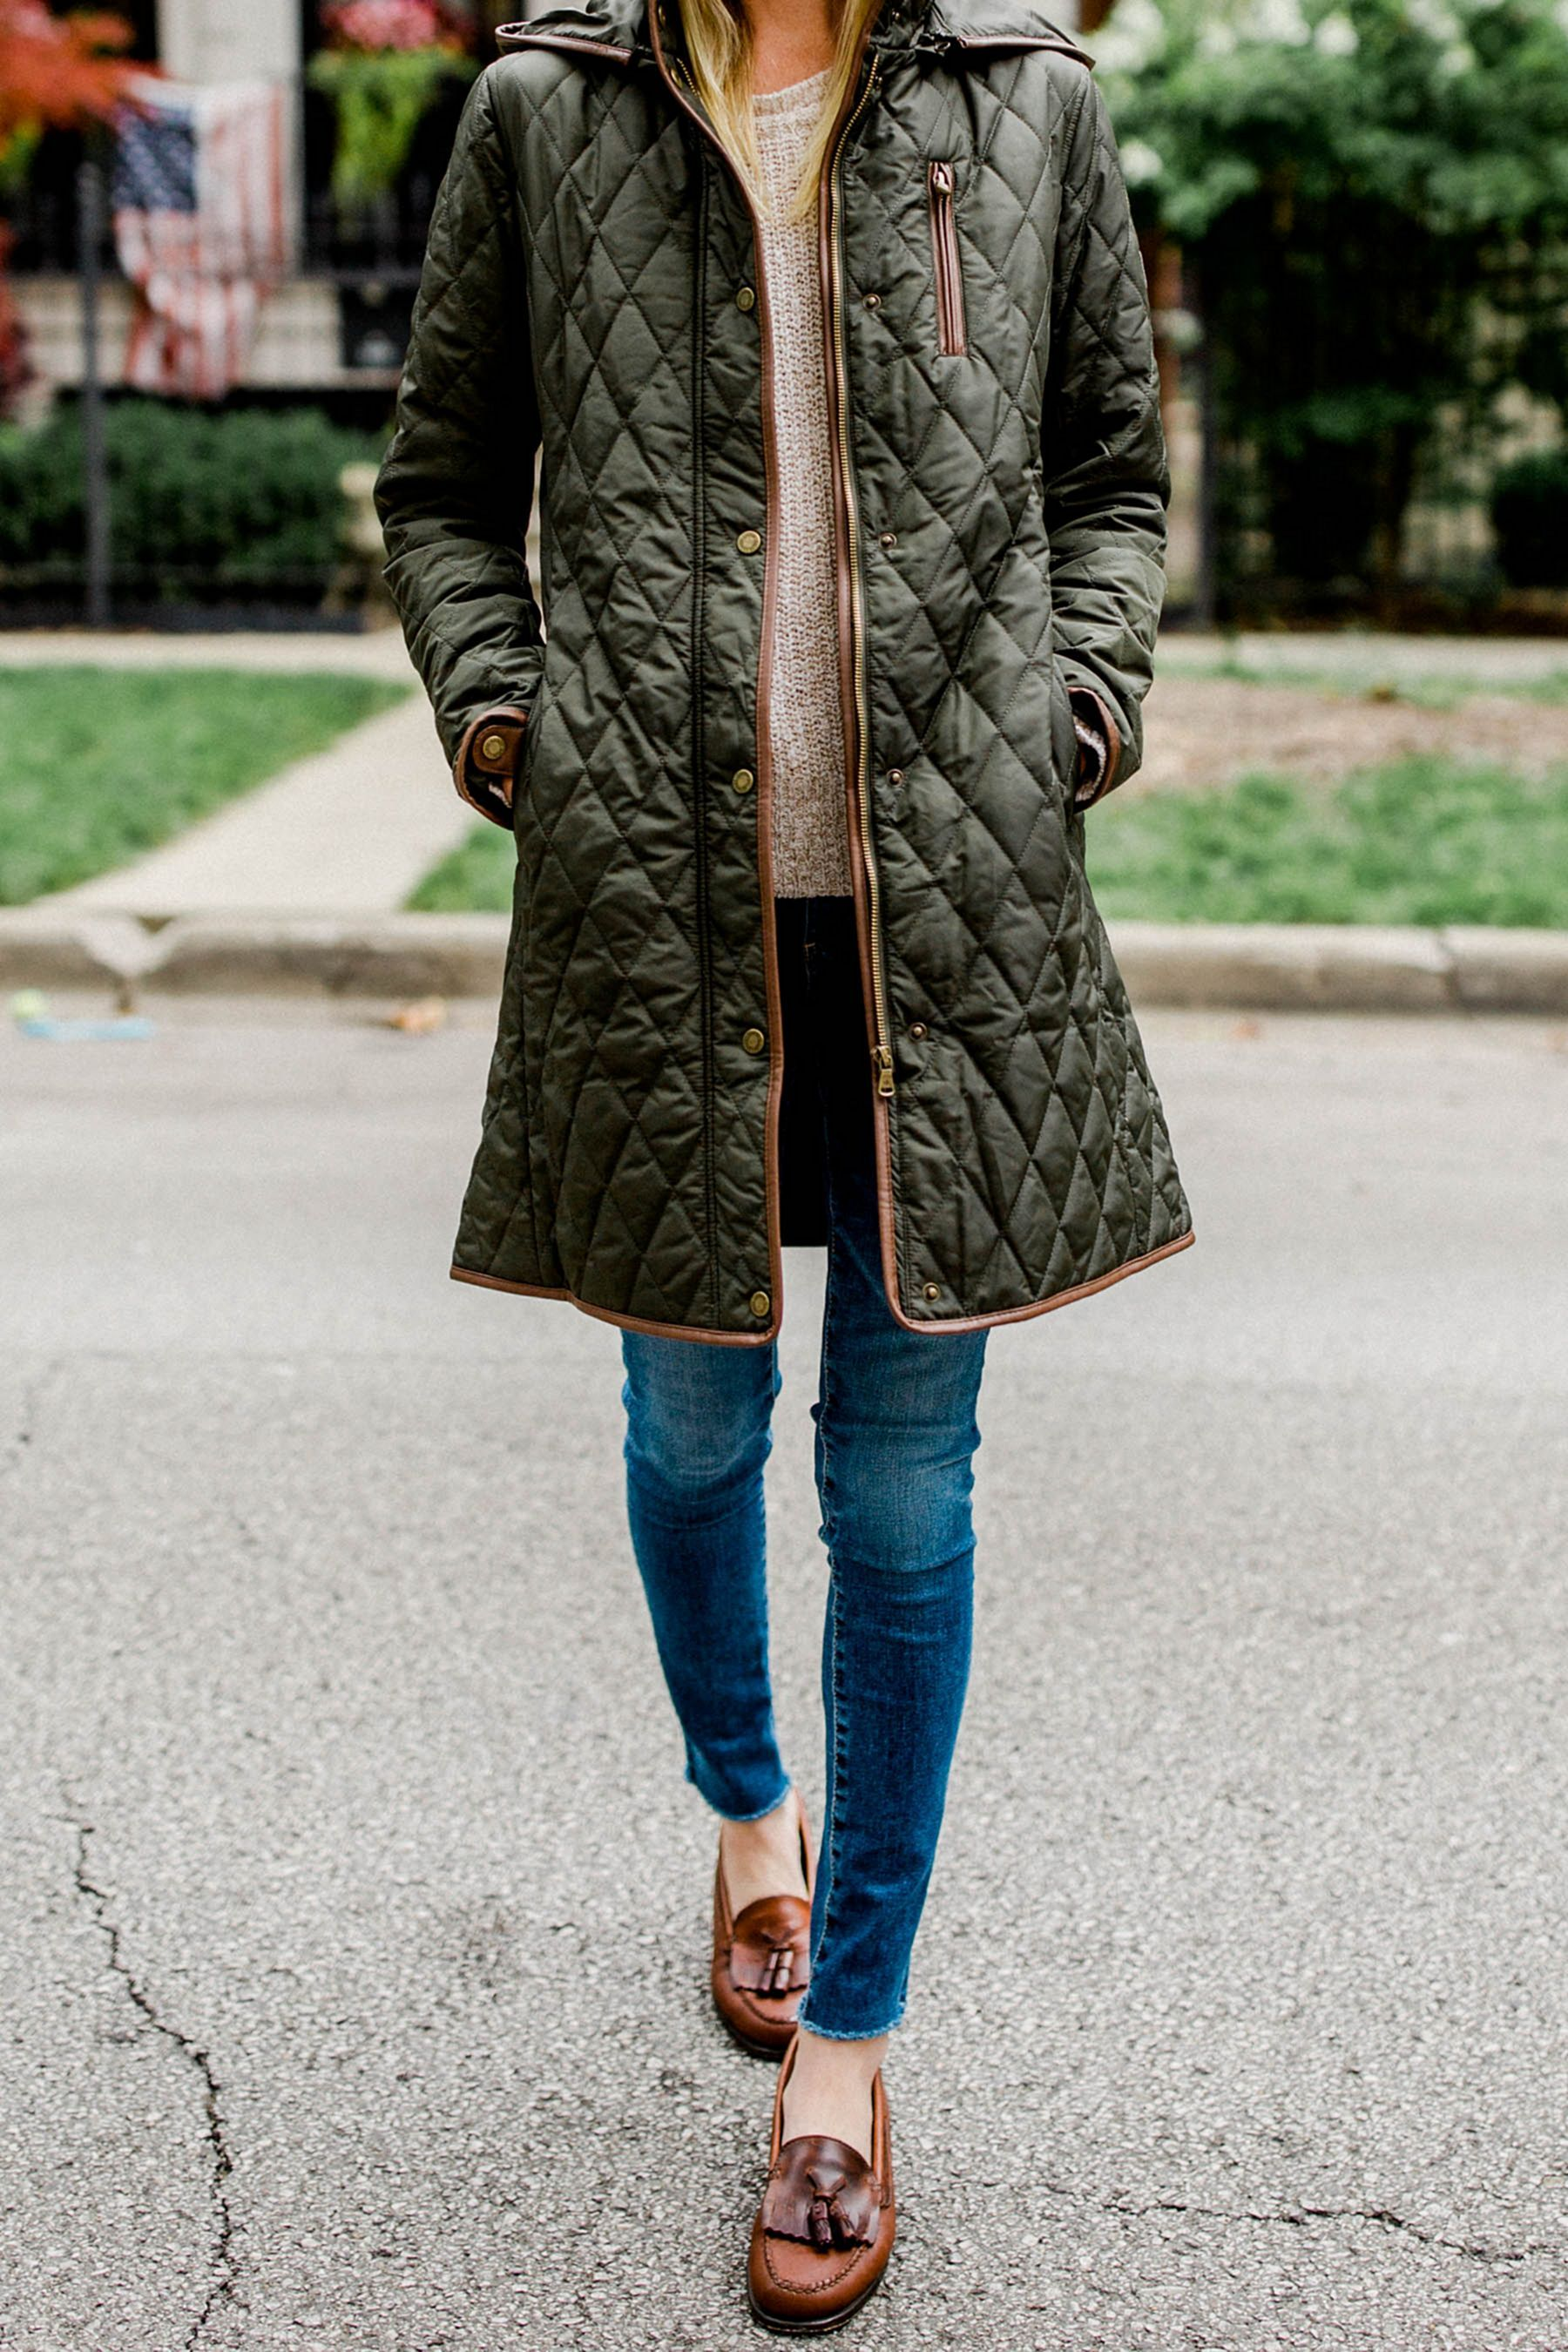 23 newest winter style ideas for comfortable days | preppy outfits, fashion, preppy style